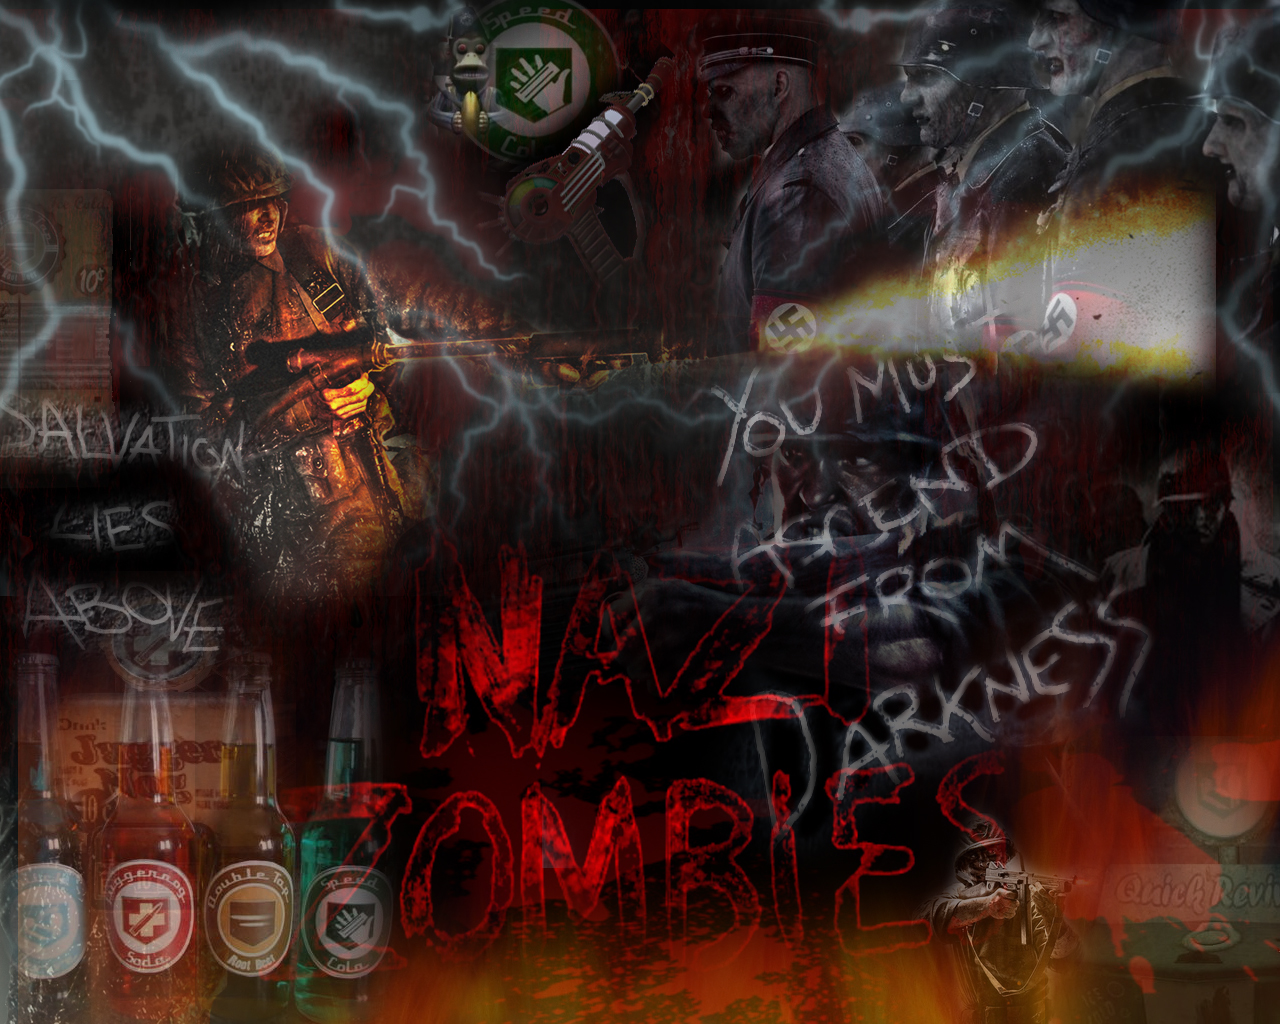 Zombies Wallpaper 1920x1080 COD Zombies Wallpapers...